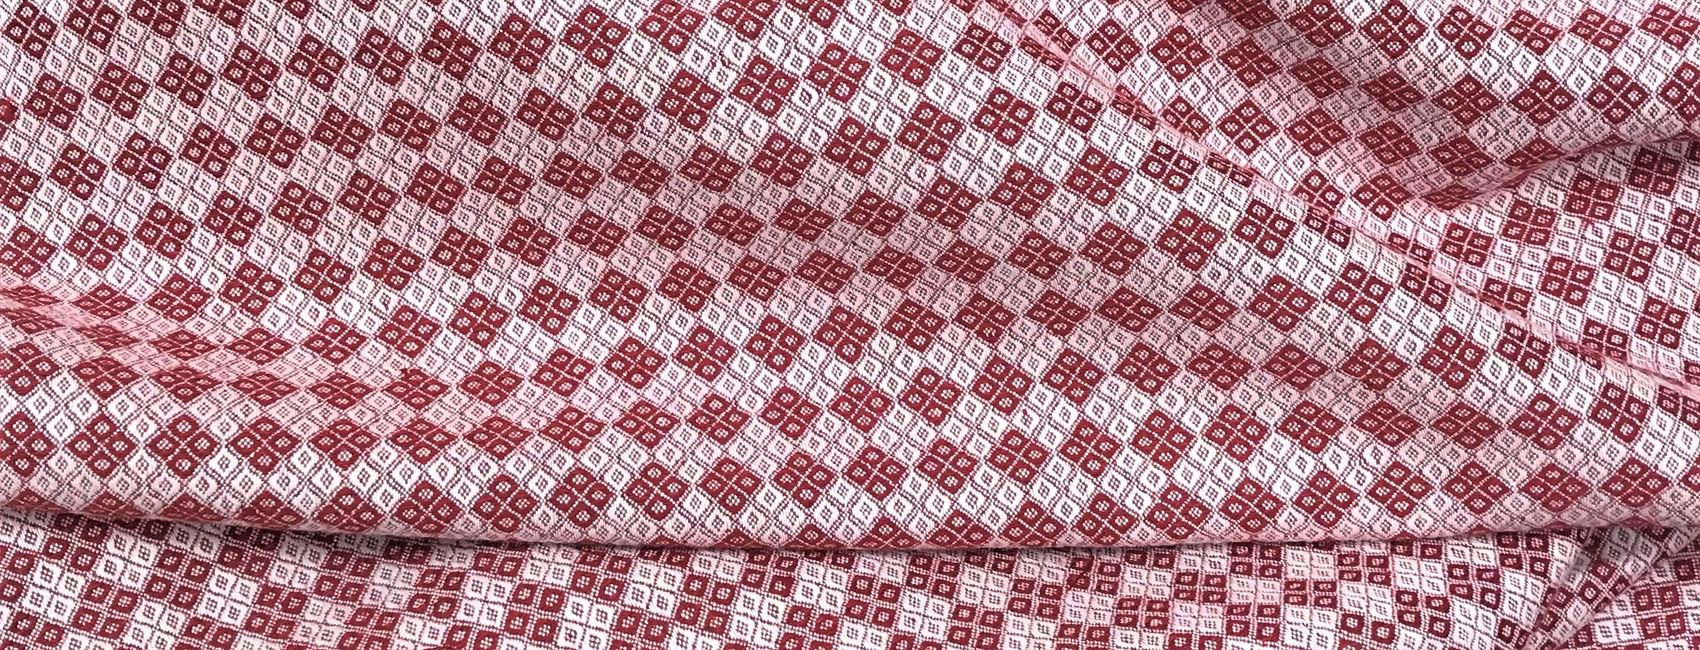 295 - Semi linen with diamond pattern